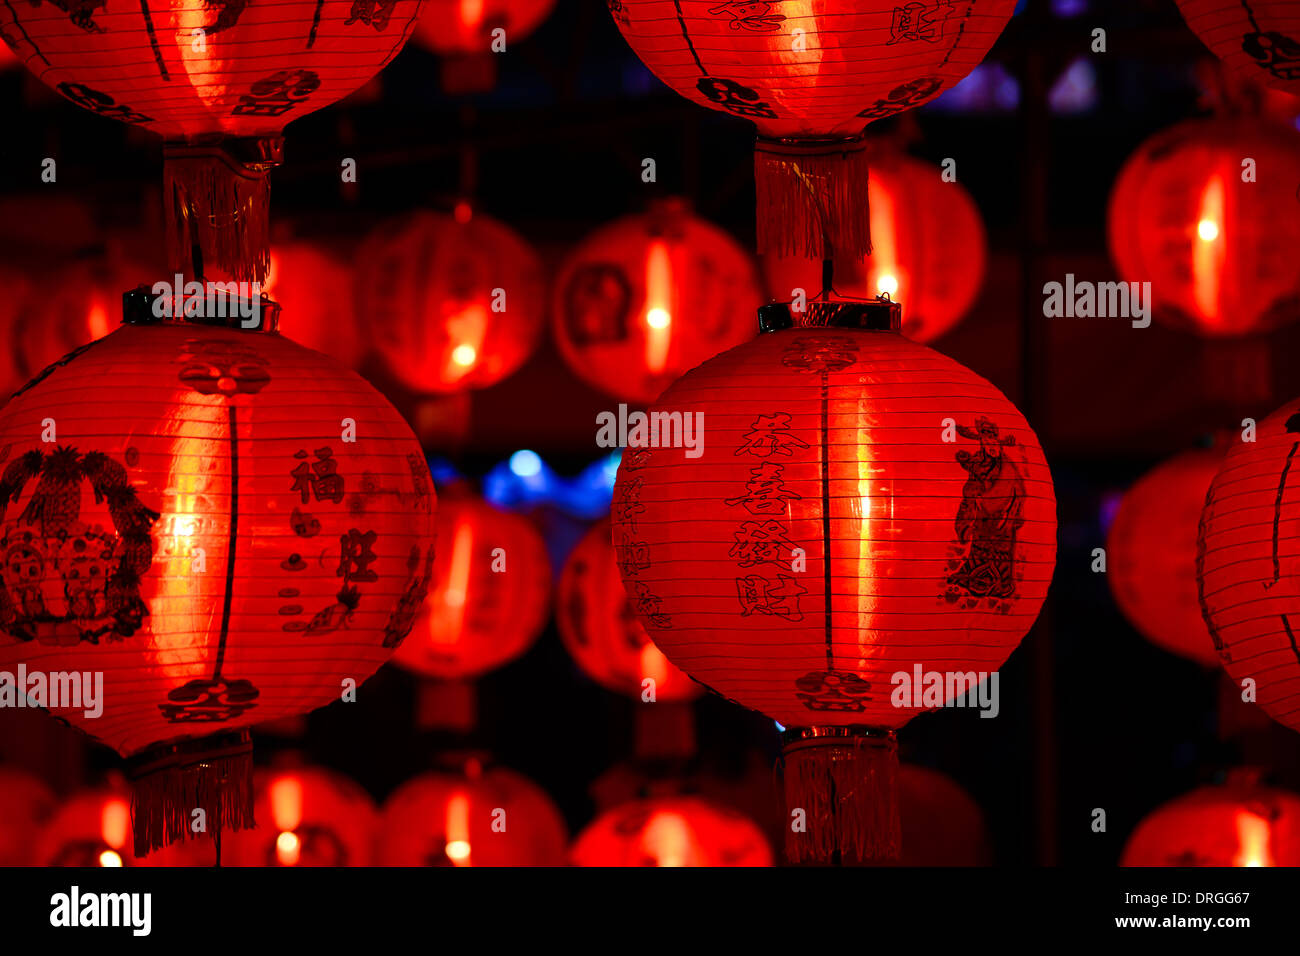 chinese lanterns for chinese new year in night - Stock Image